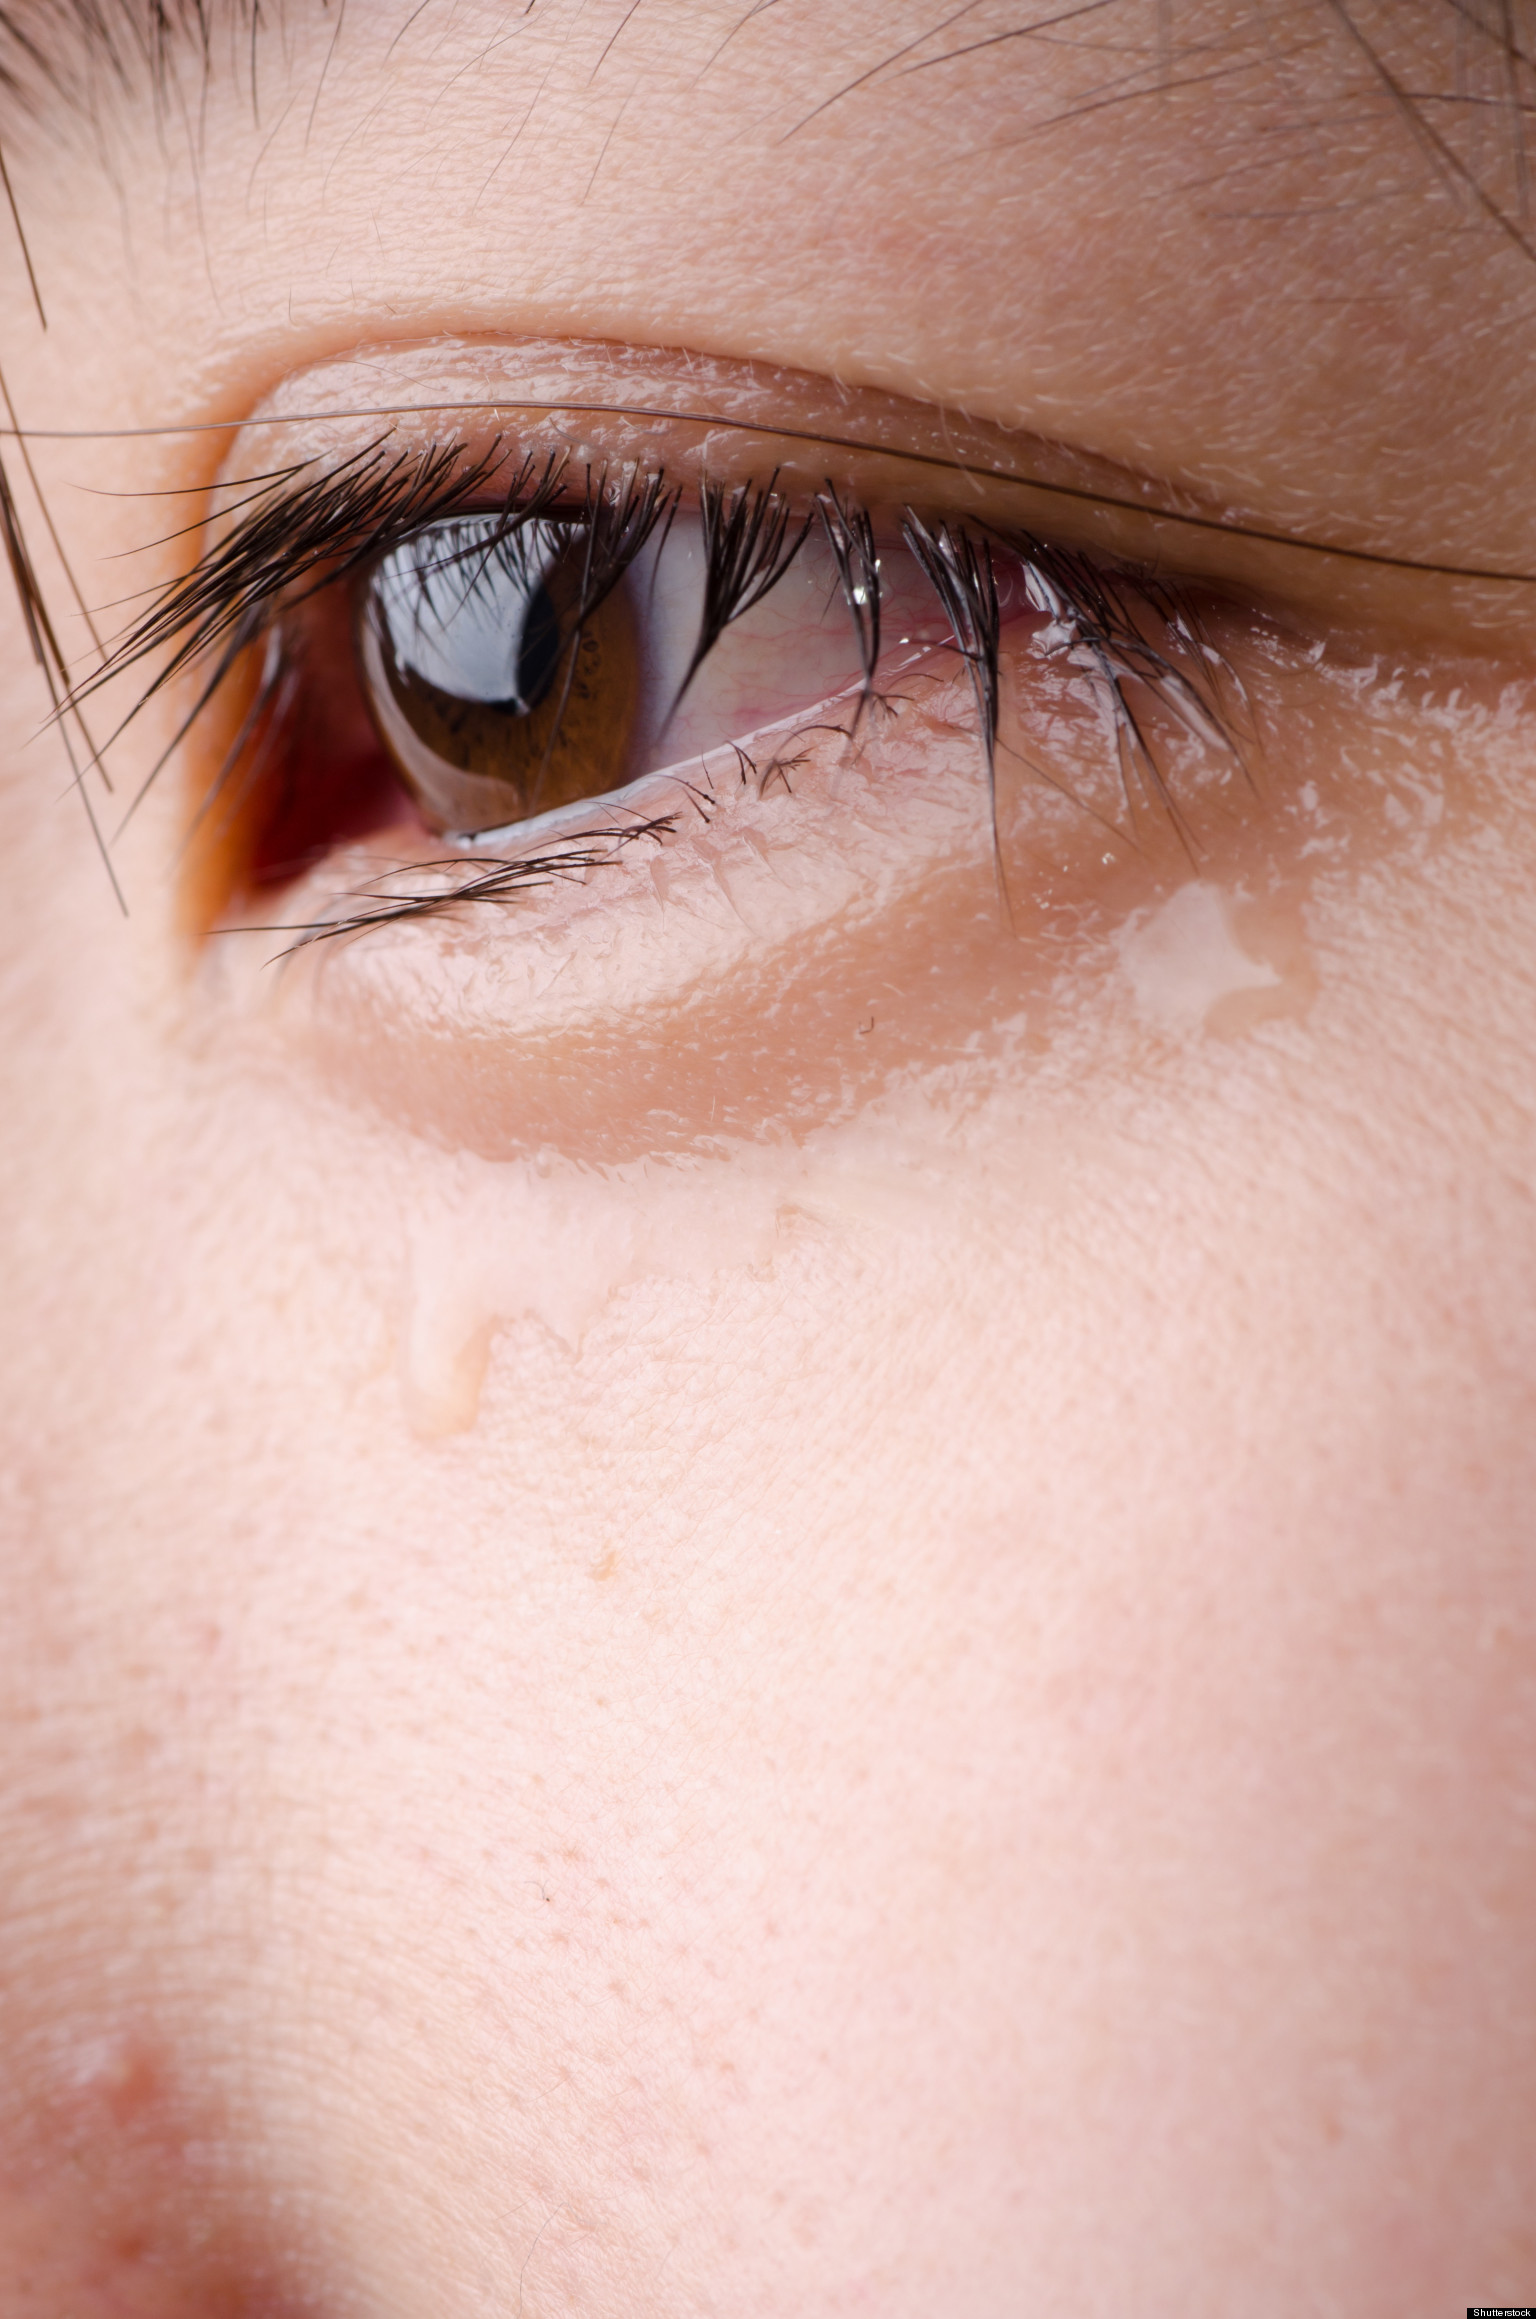 Crying Science: Why Do We Shed Tears When We're Sad? (VIDEO)